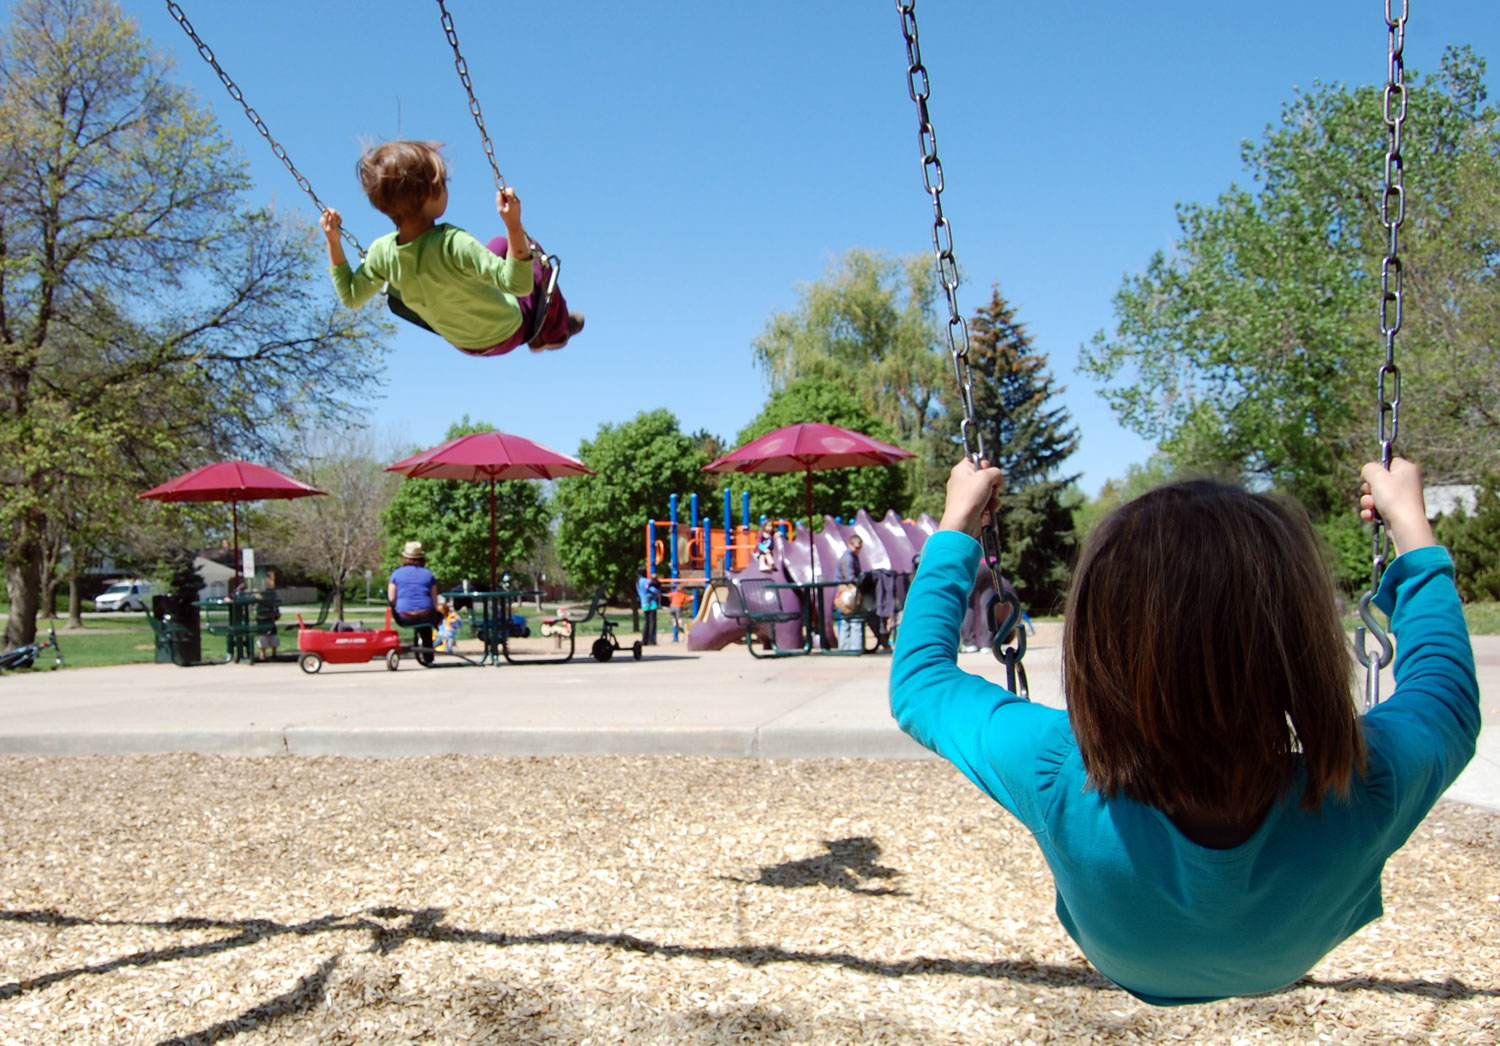 kids-swing-playground